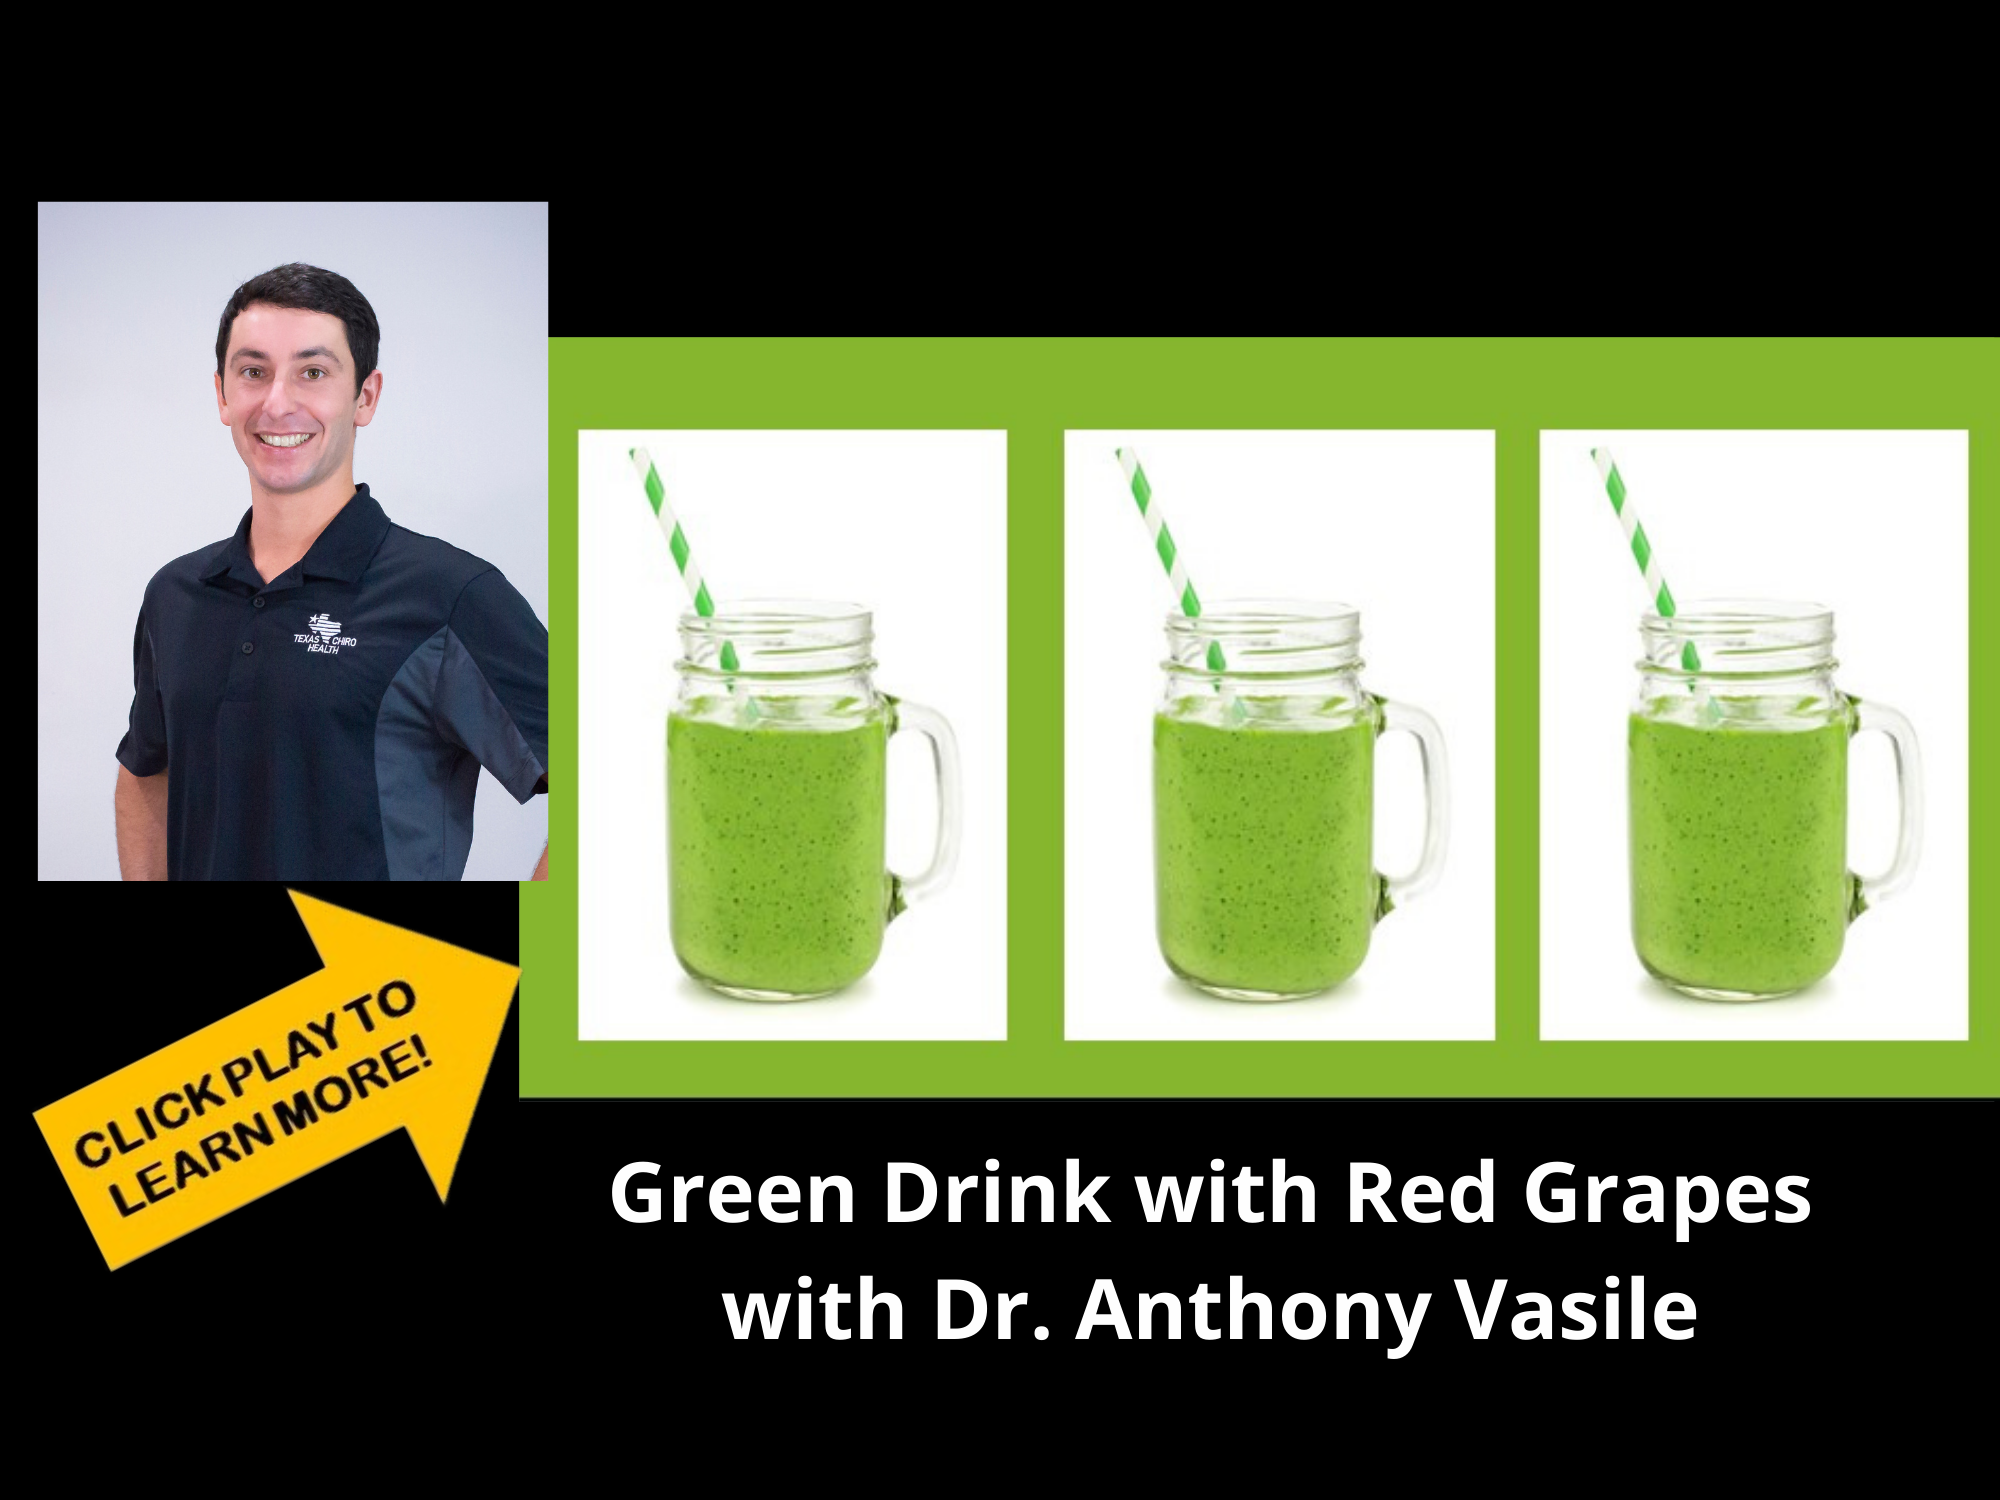 Green Drink with Red Grapes